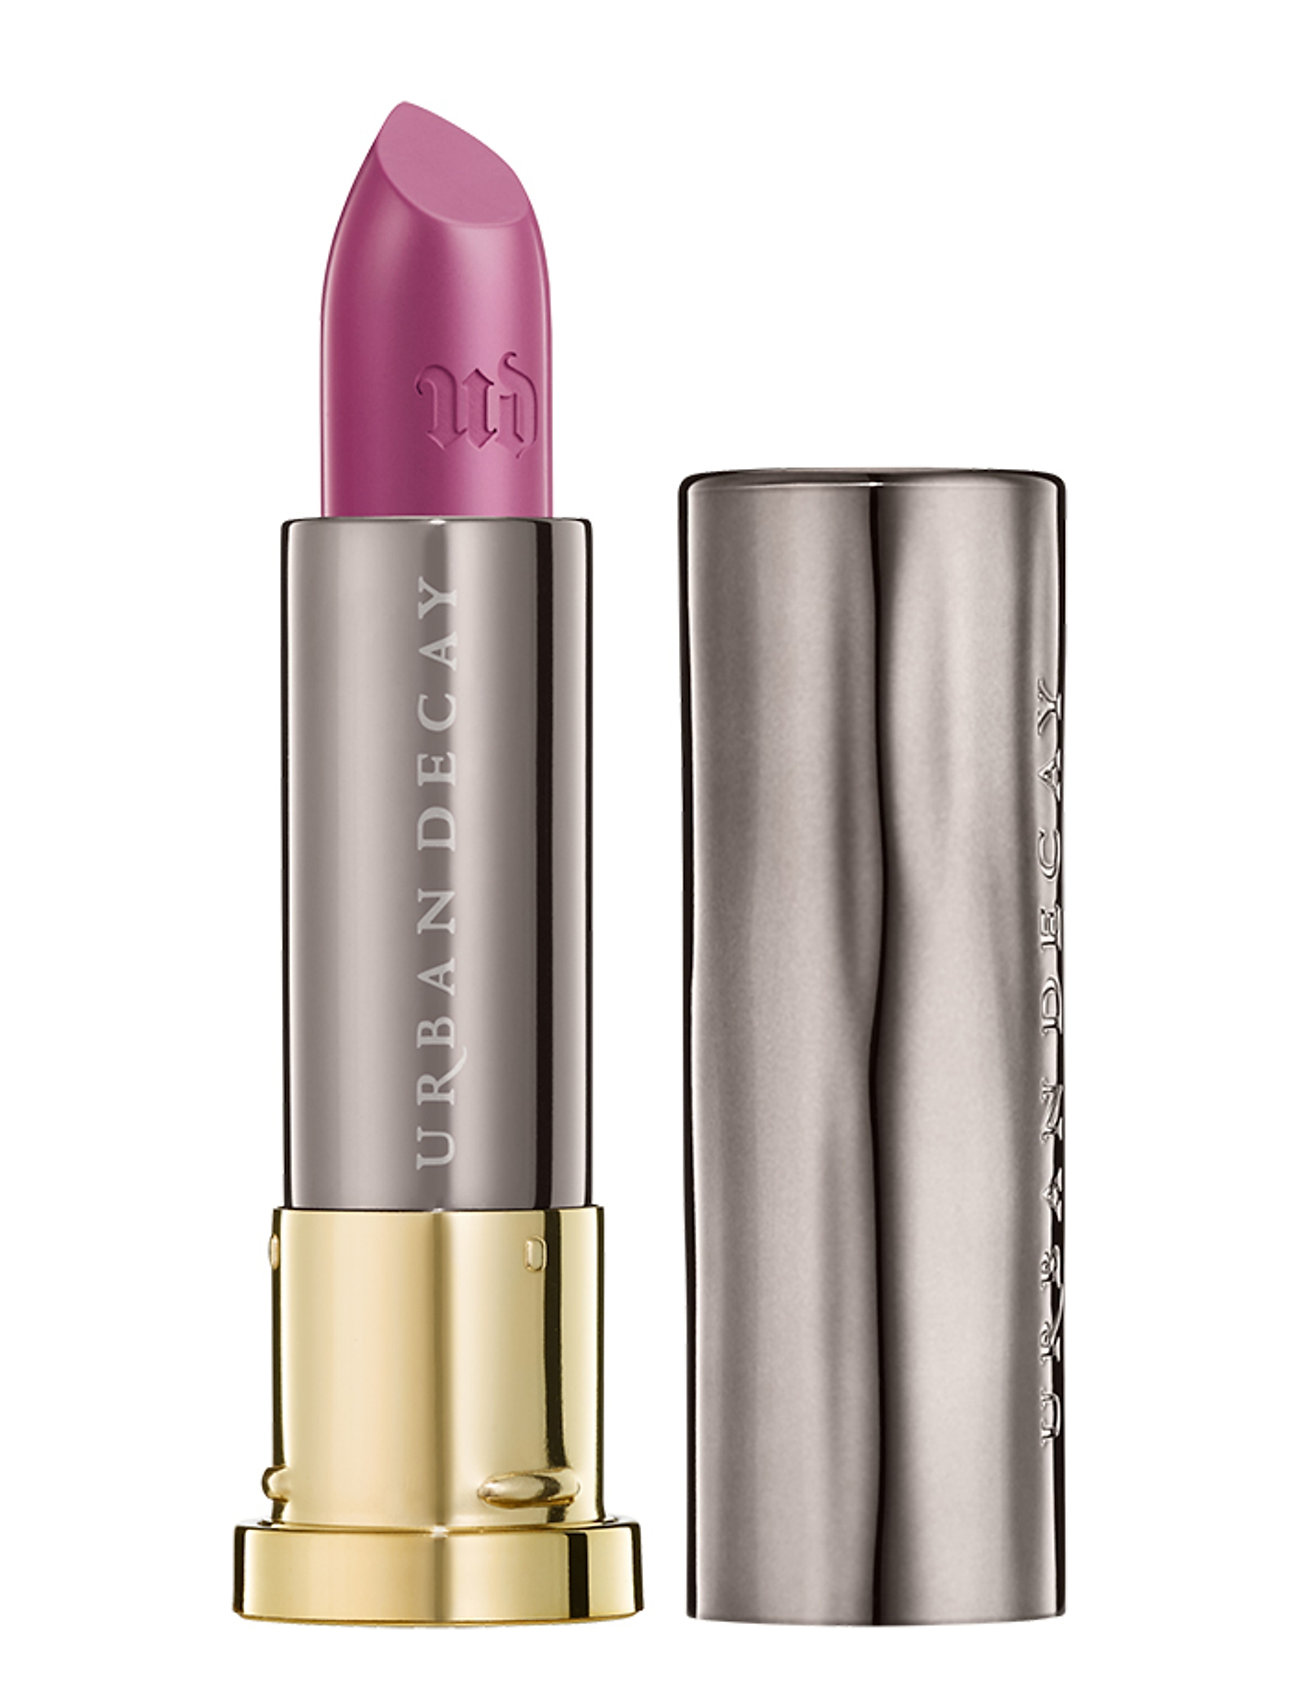 Image of Vice Lipstick Læbestift Makeup Lilla Urban Decay (3067509947)